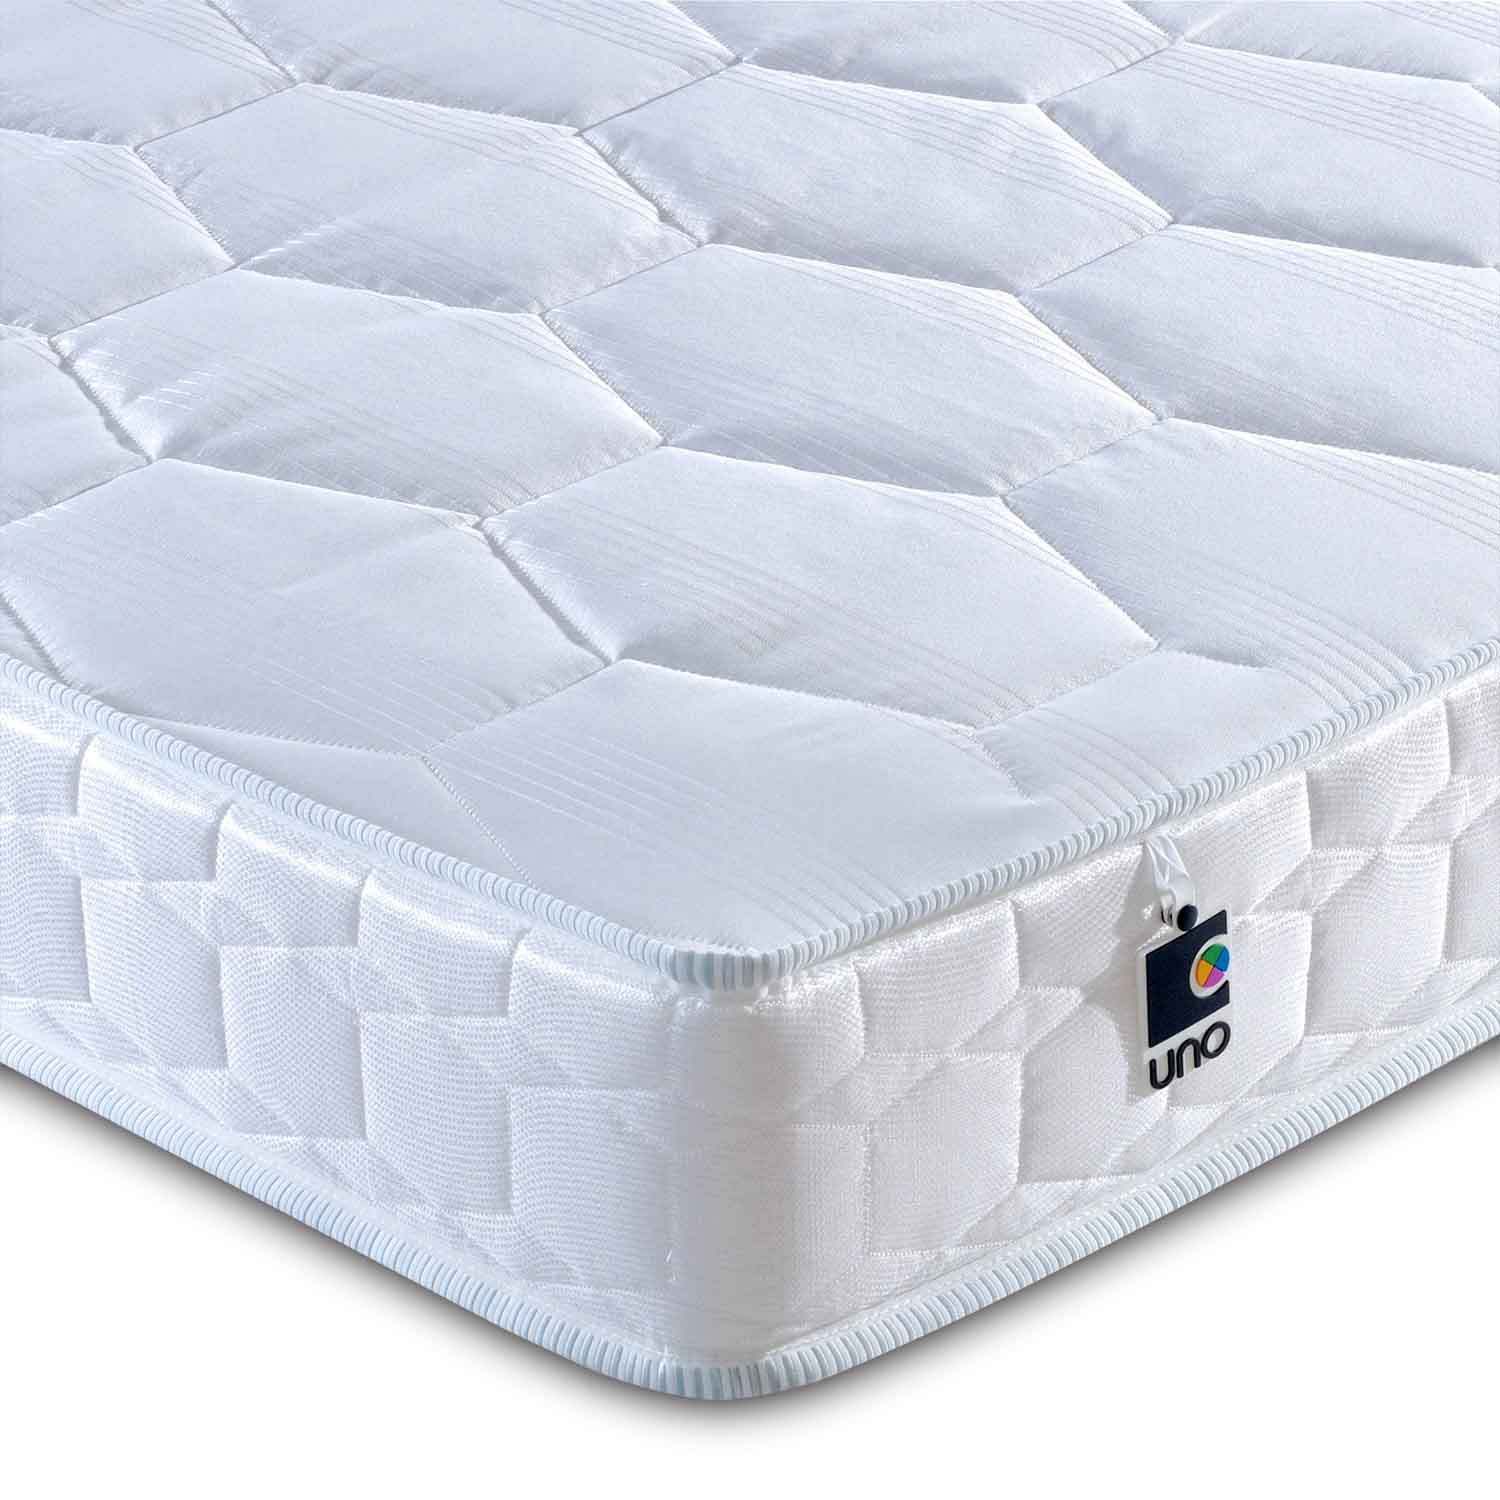 Photo of Uno deluxe firm 4ft small double 14cm deep mattress